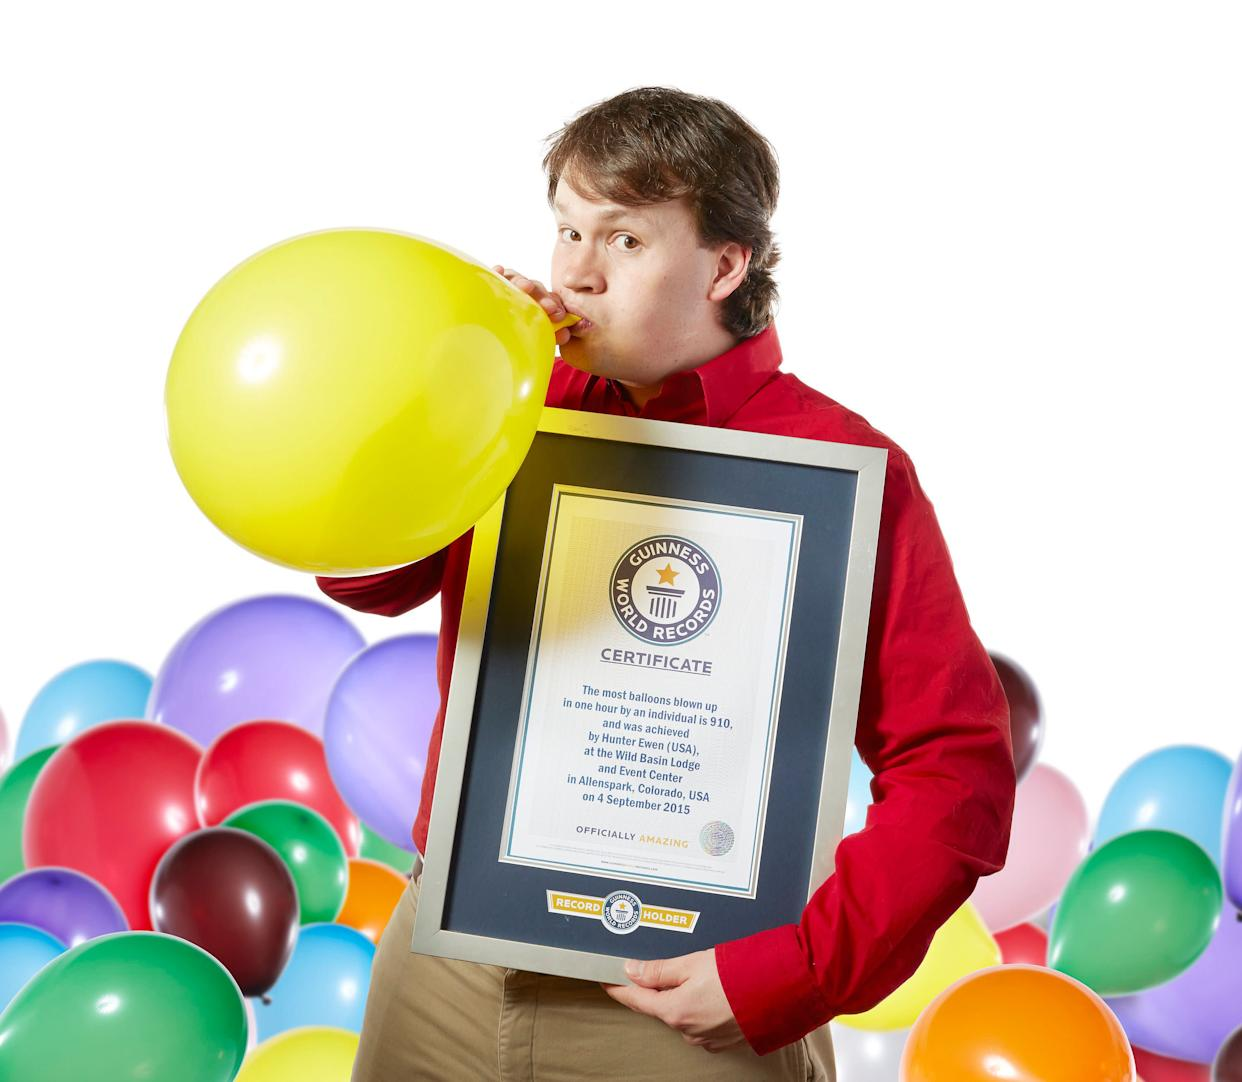 Hunter Ewen holds the record for most balloons blown up in an hour: 910.